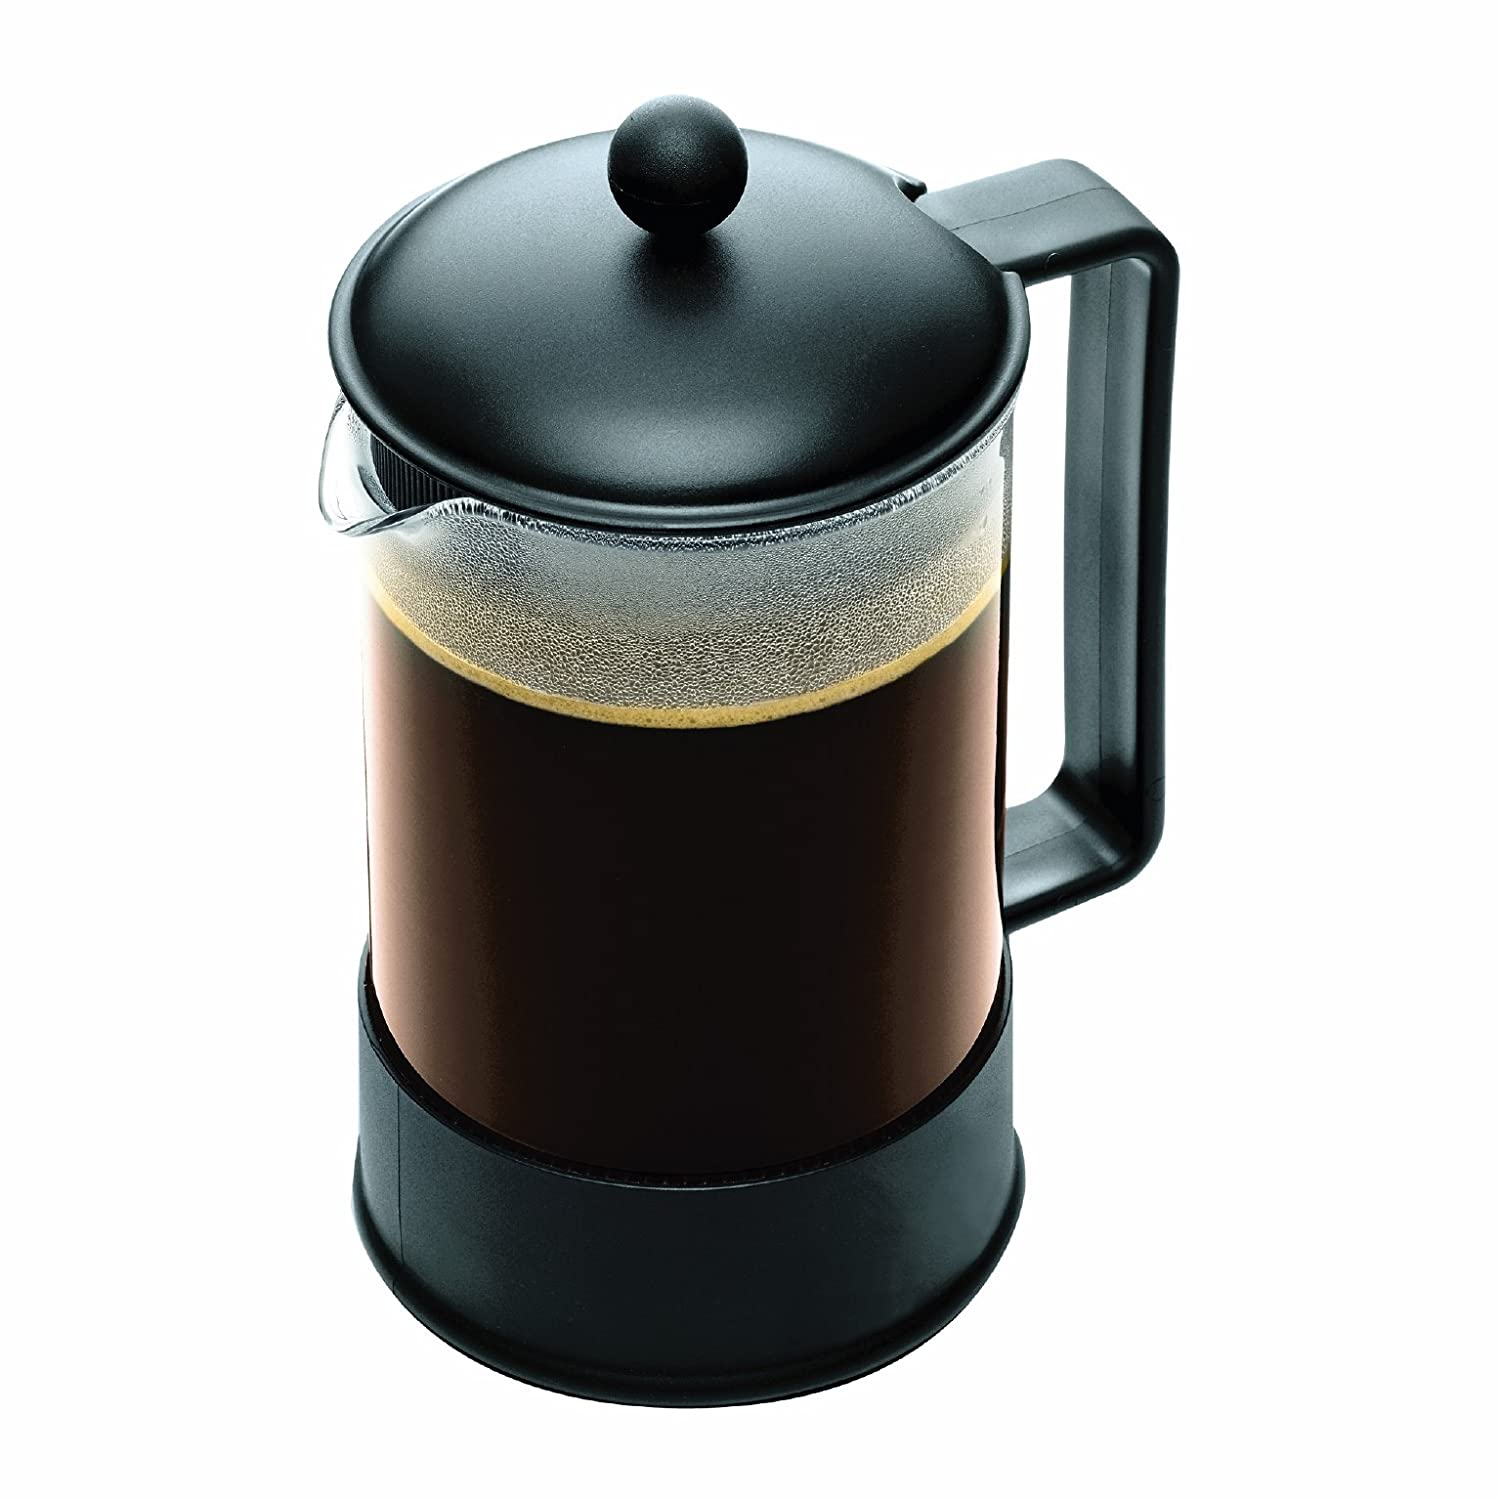 French Press Coffee Maker Images : New Bodum Brazil 1 1 2 Liter French Press Coffee Maker 12 Cup Black Free SHIP eBay